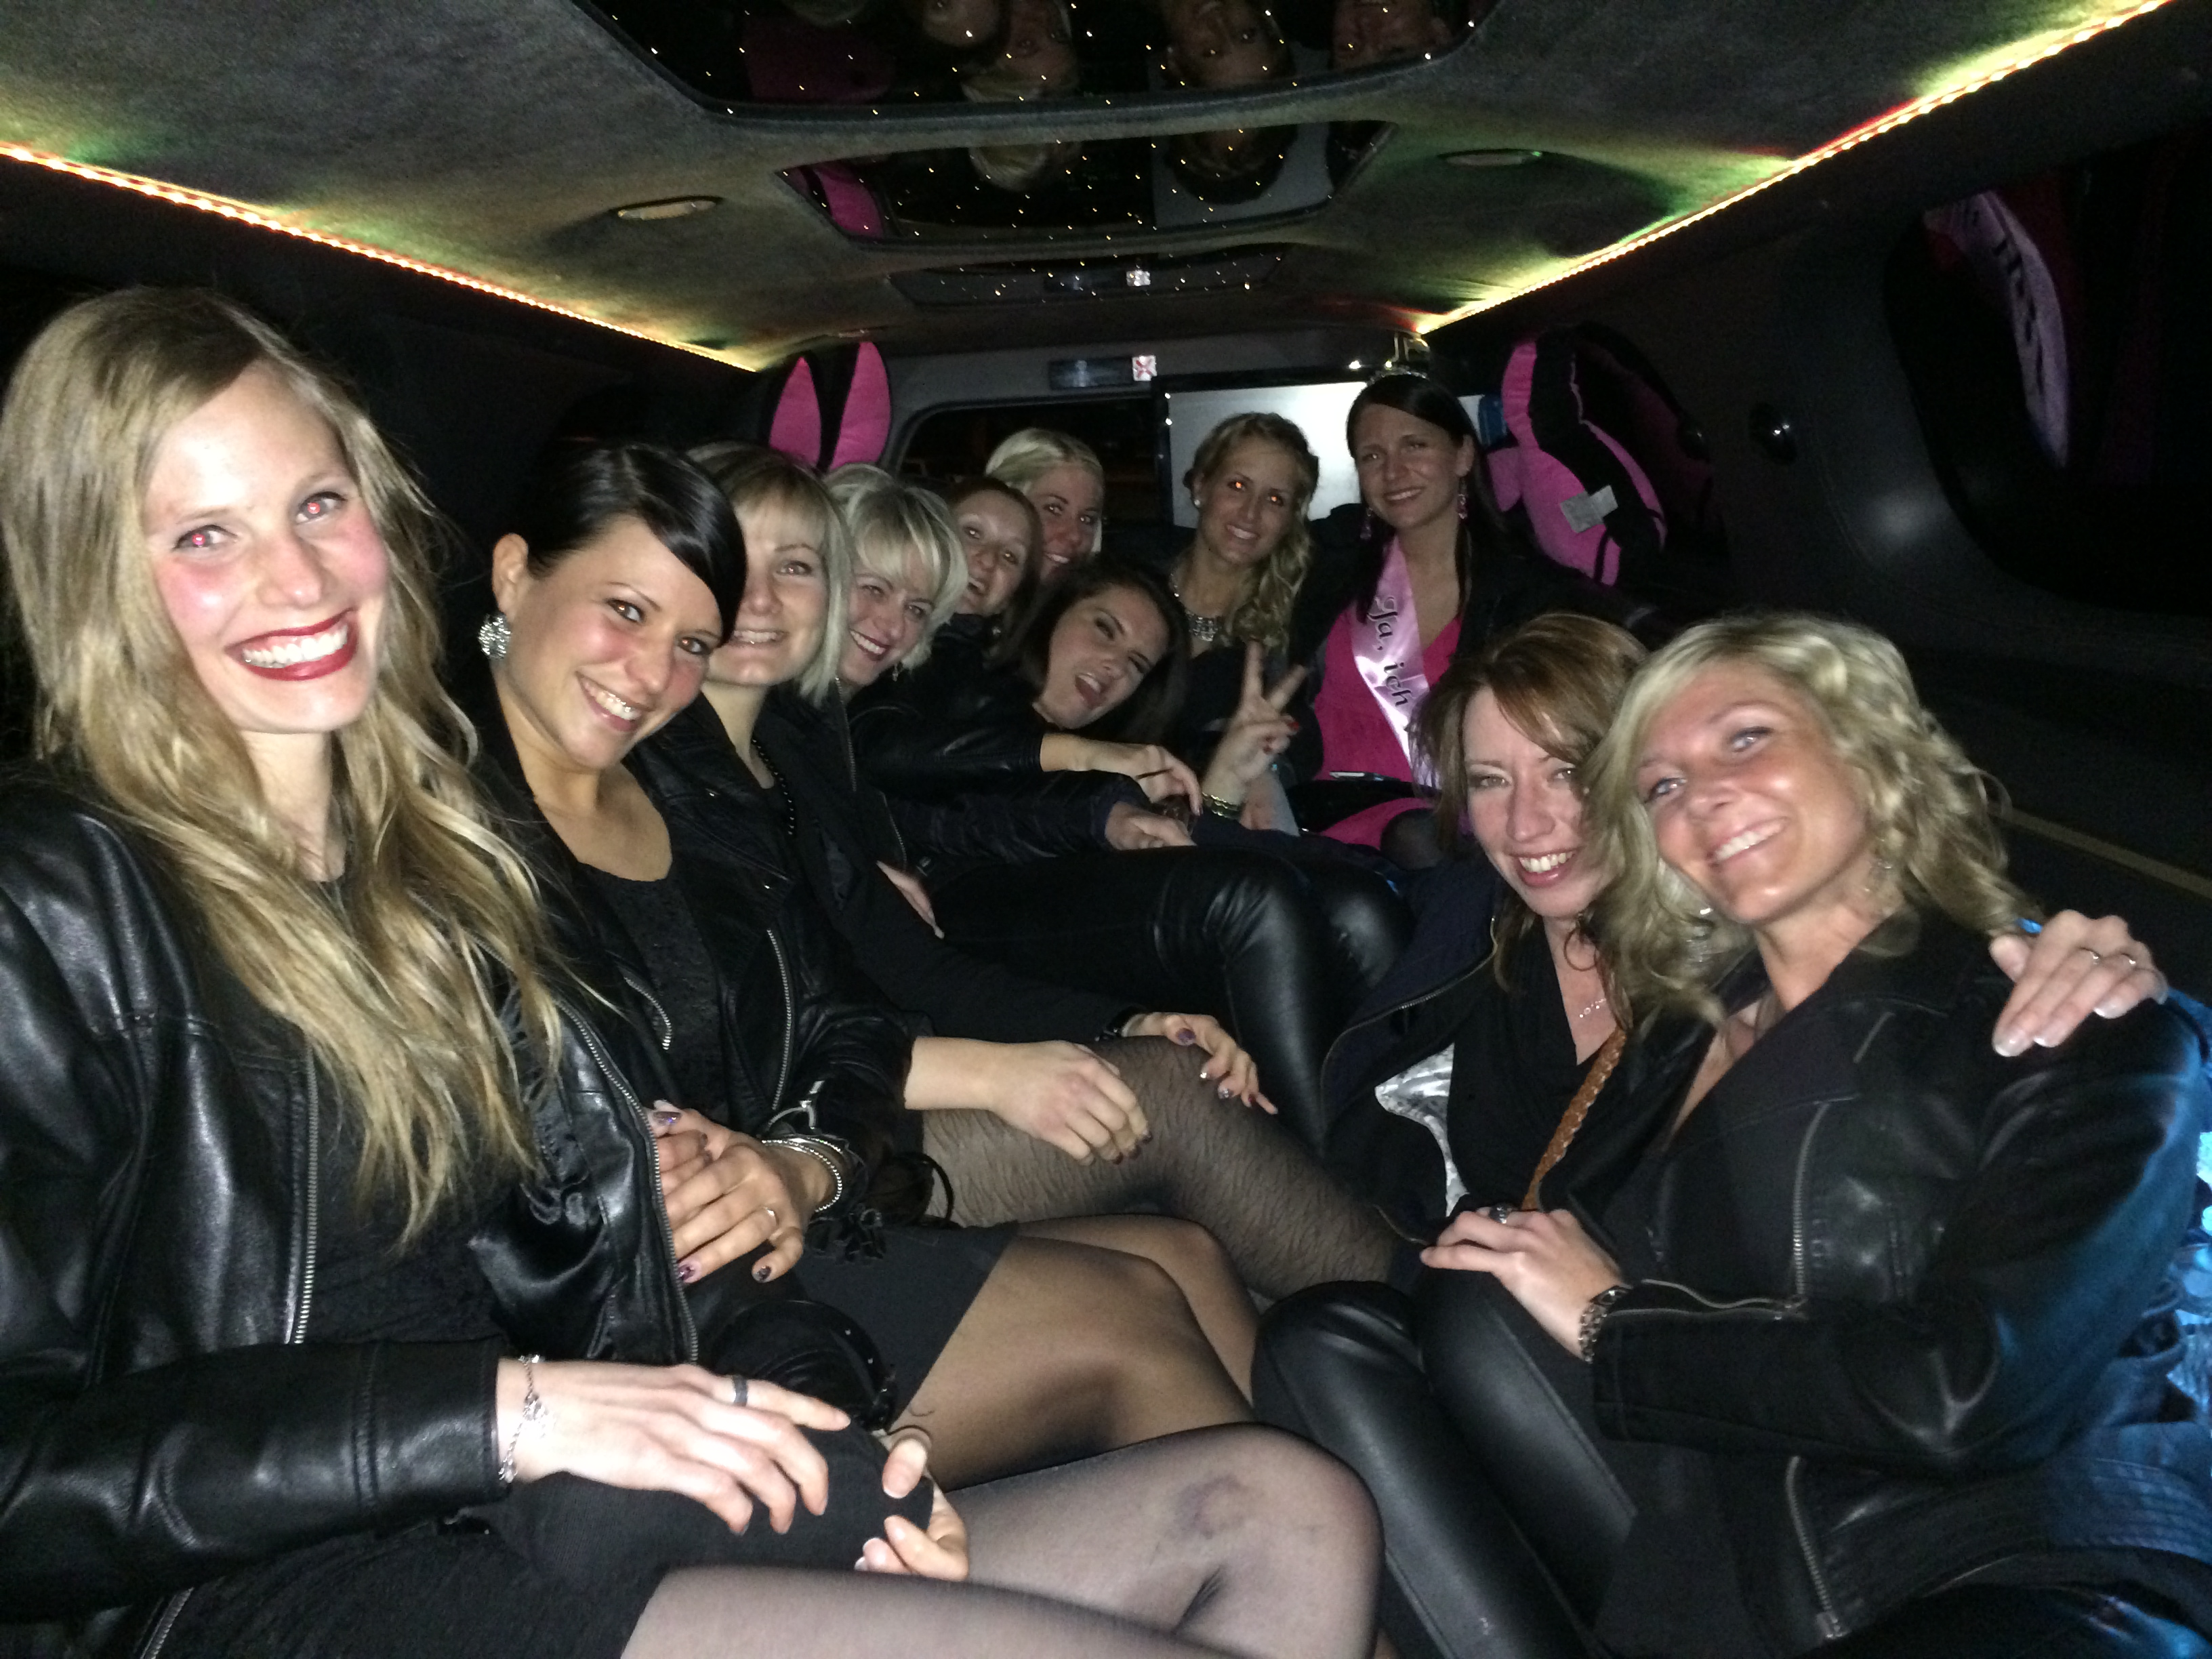 Stretchlimousine-Pink-mieten-Rosa-Limo-Partybus1